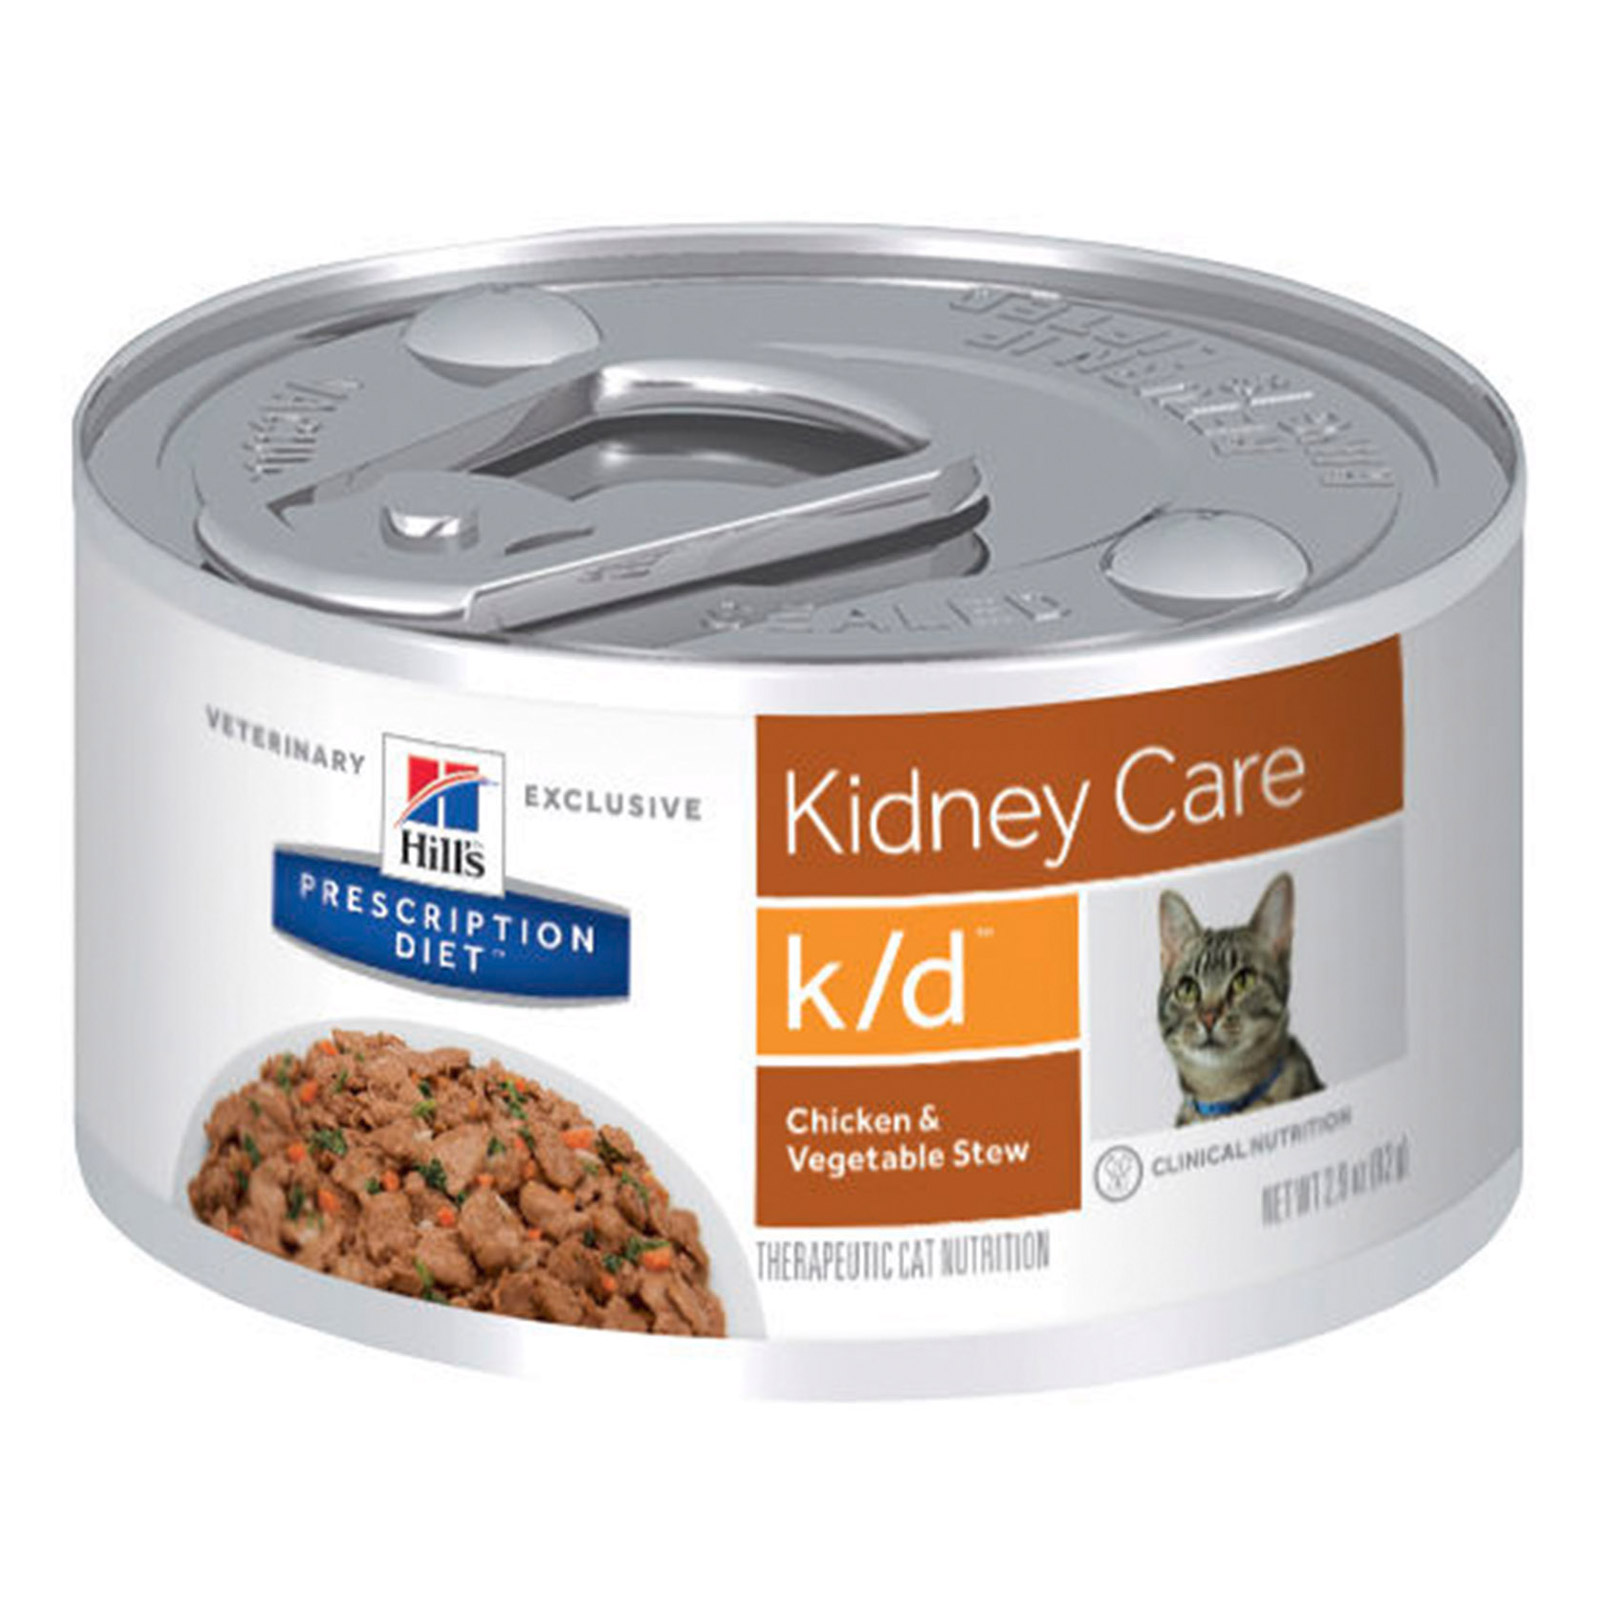 Hill's Prescription Diet k/d Kidney Care with Chicken & Vegetable Stew Canned Cat Food